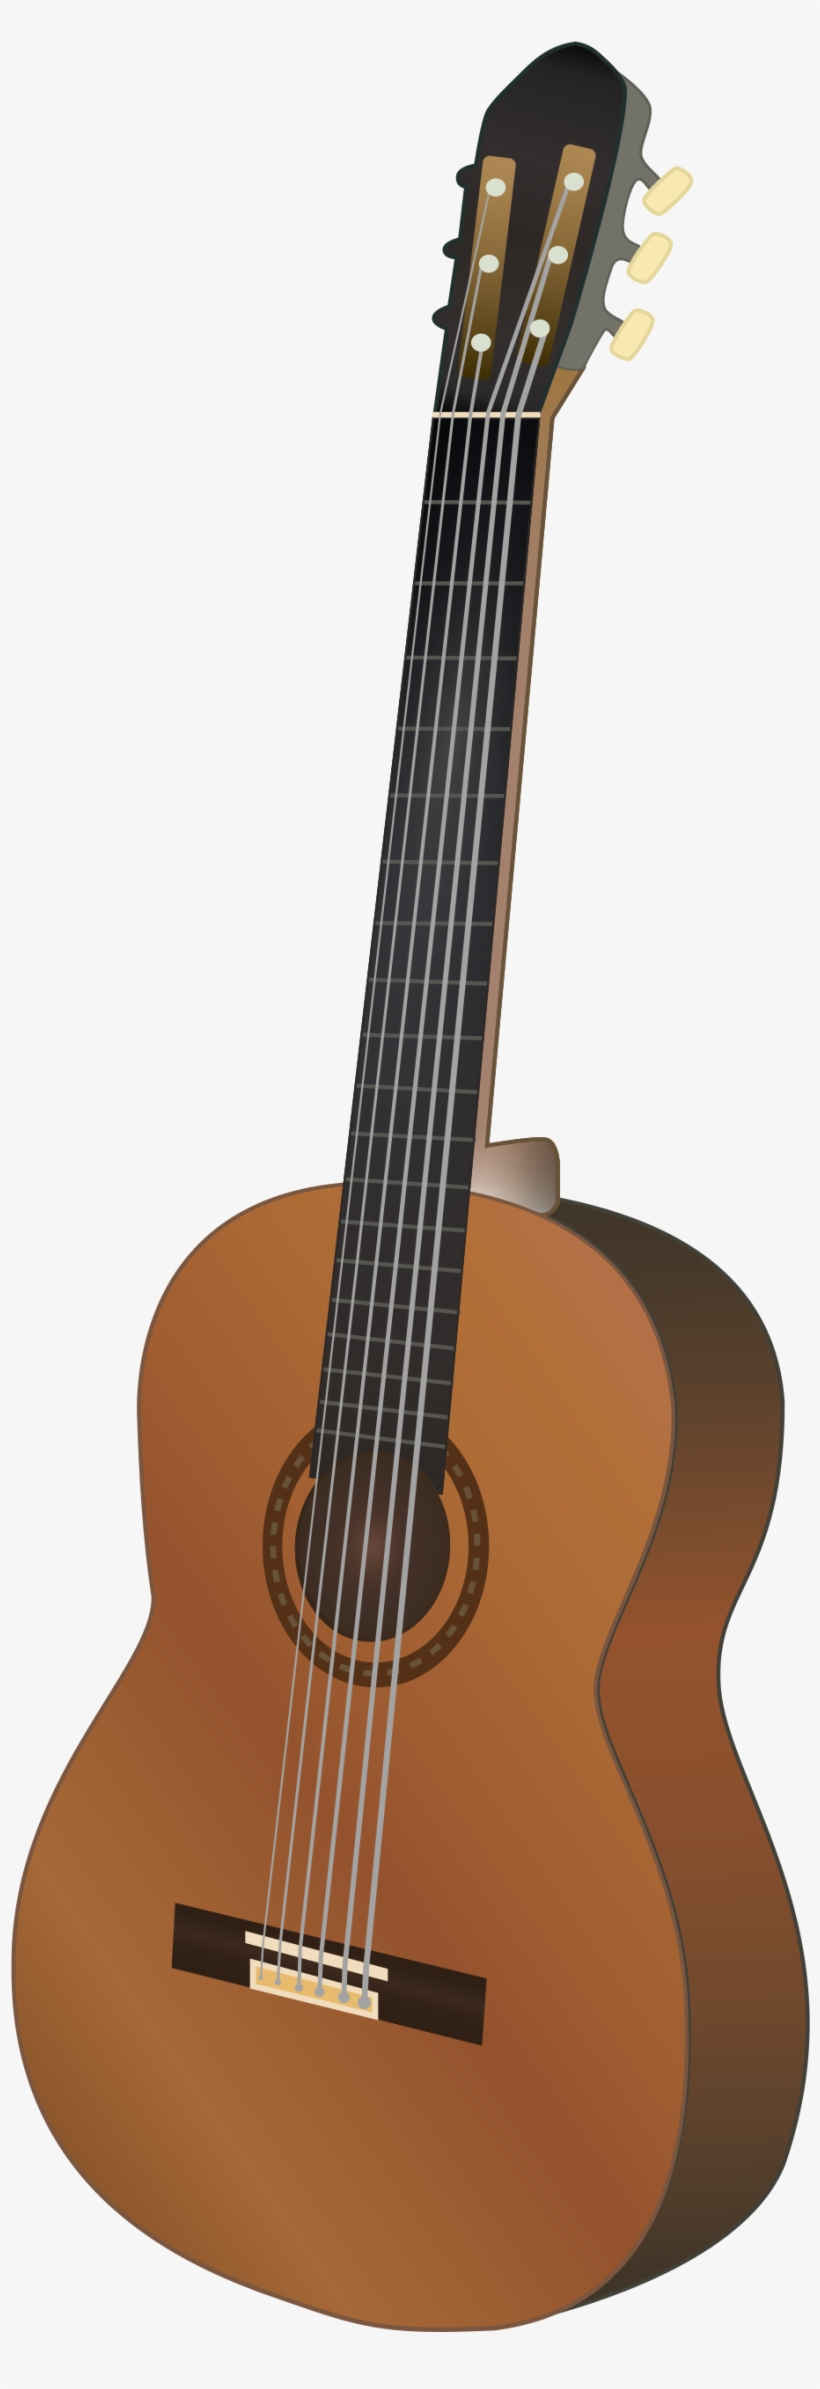 Fileacoustic Guitar Unlabeled - All Png Cb Edit, transparent png #898016